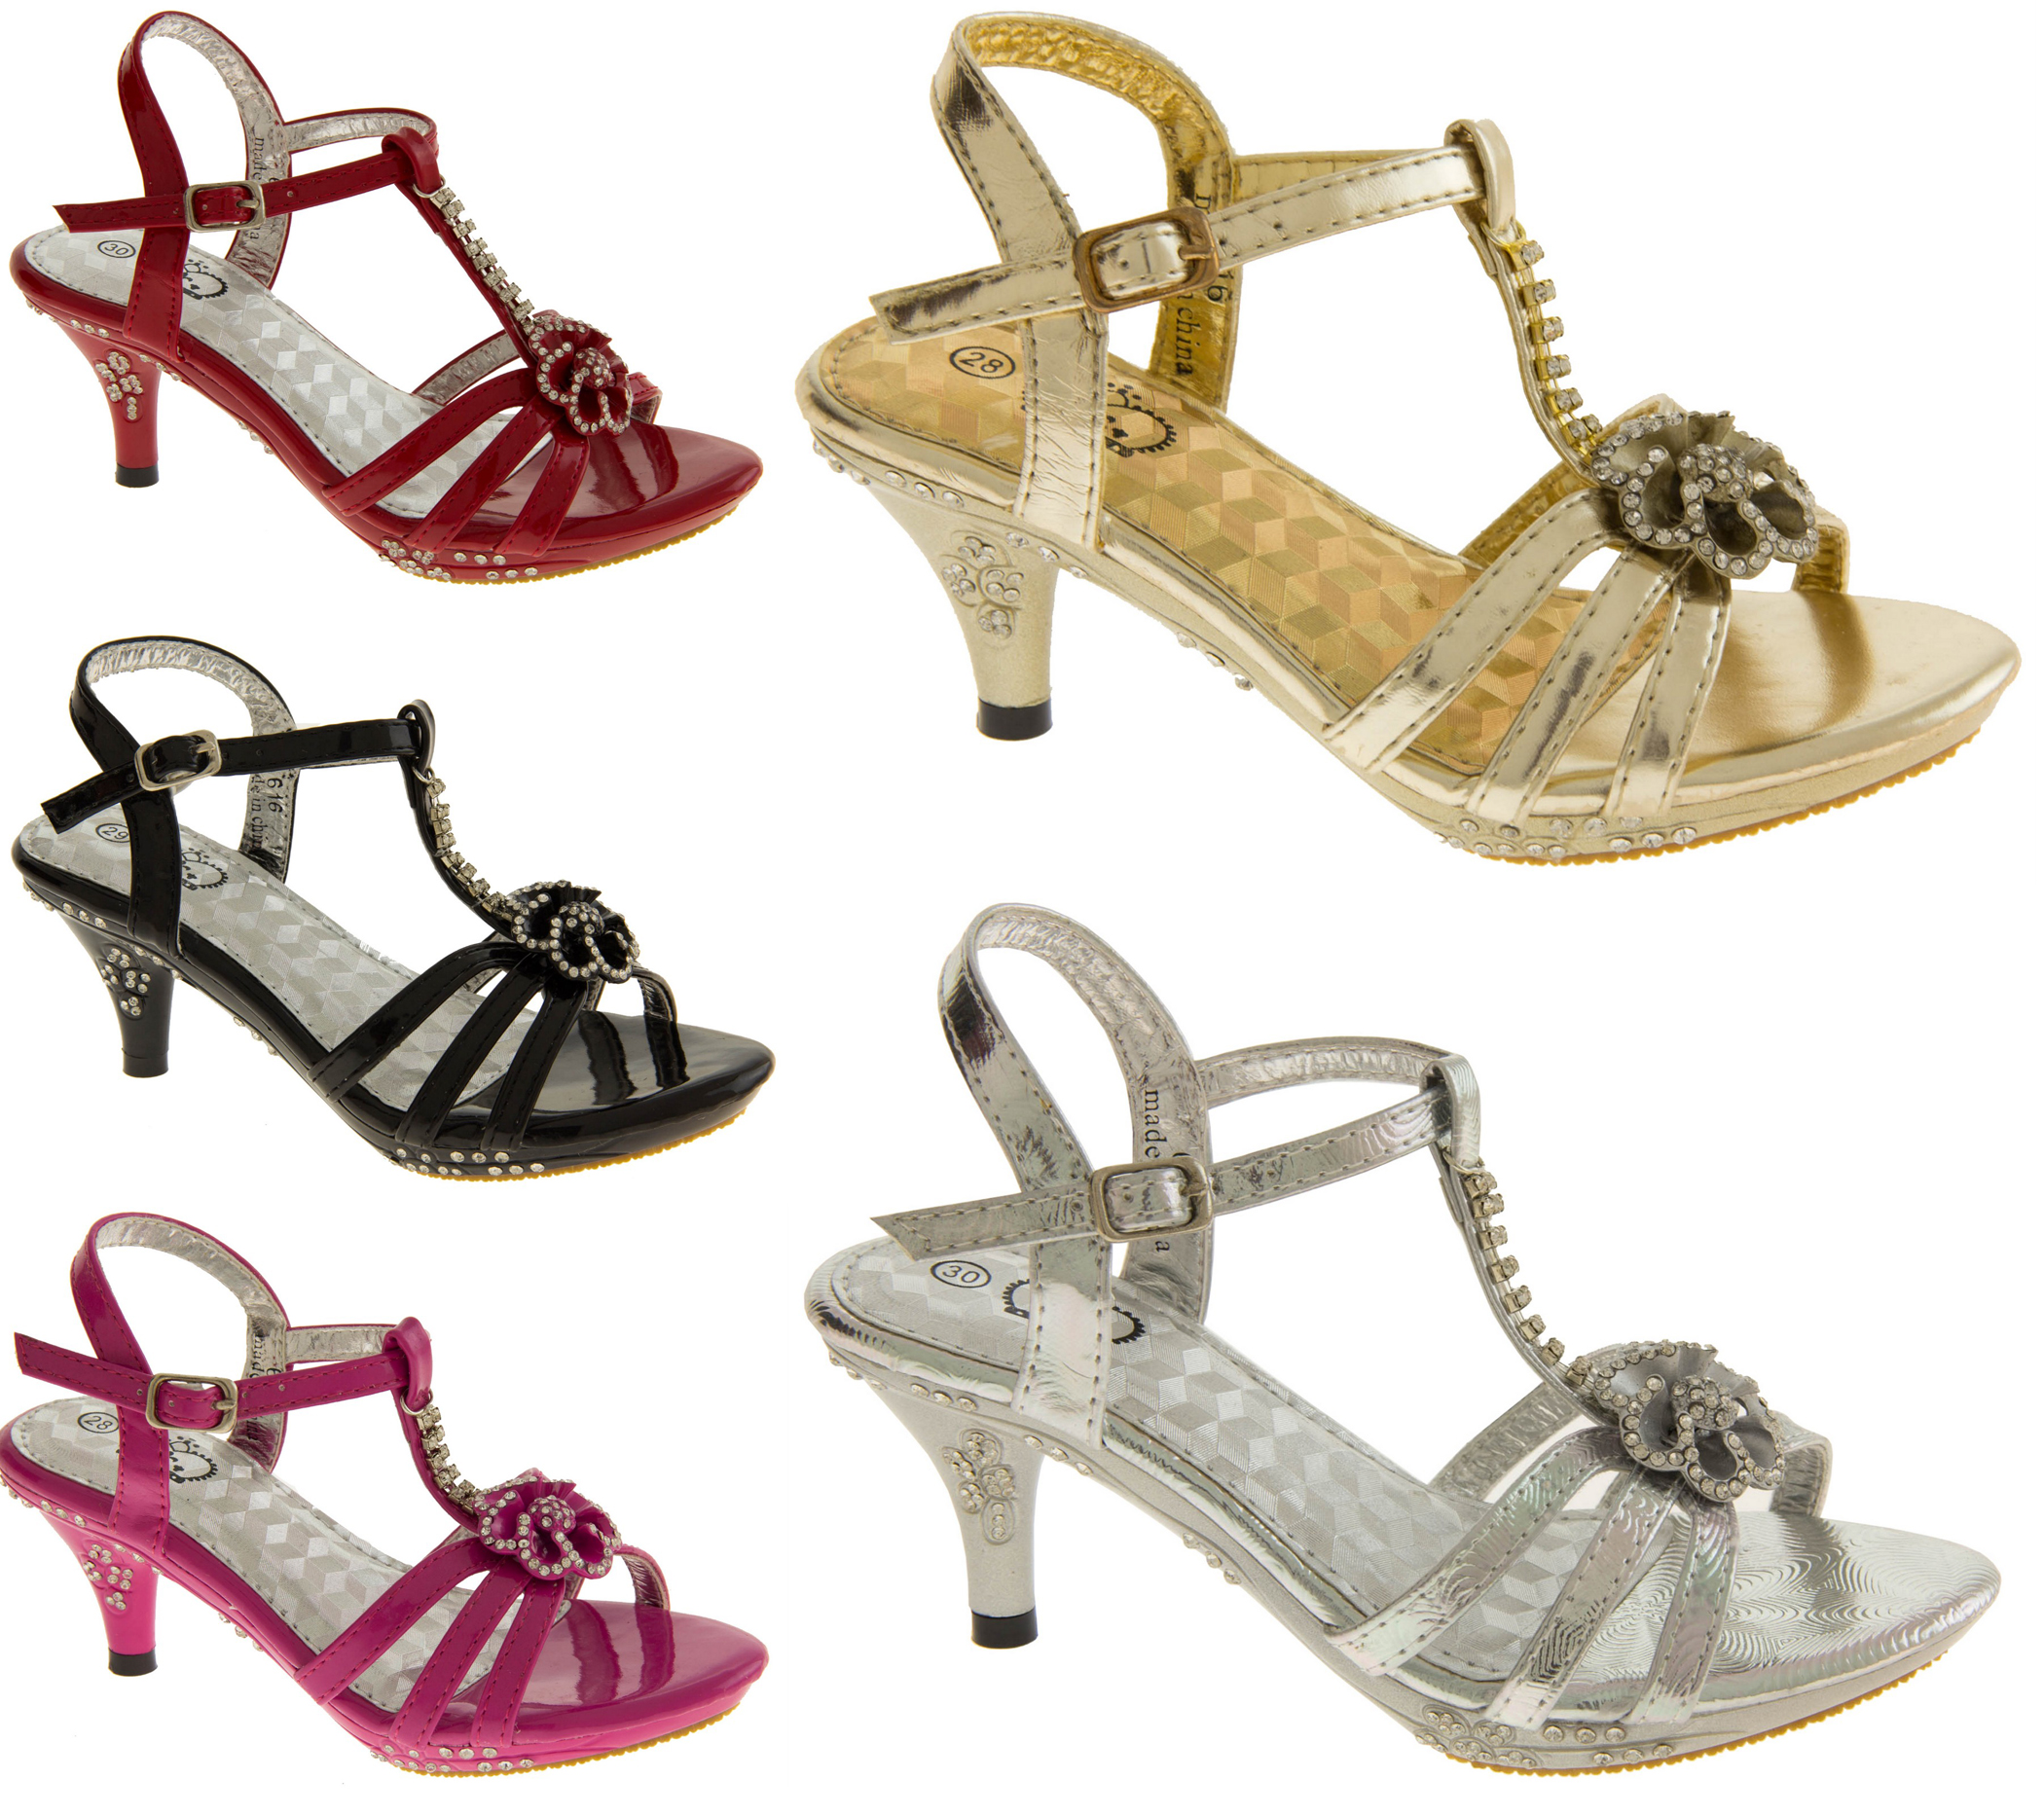 New Girls Toddlers Diamante Kitten Heel Wedding Party Heels Size 8 9 10 11 12 13